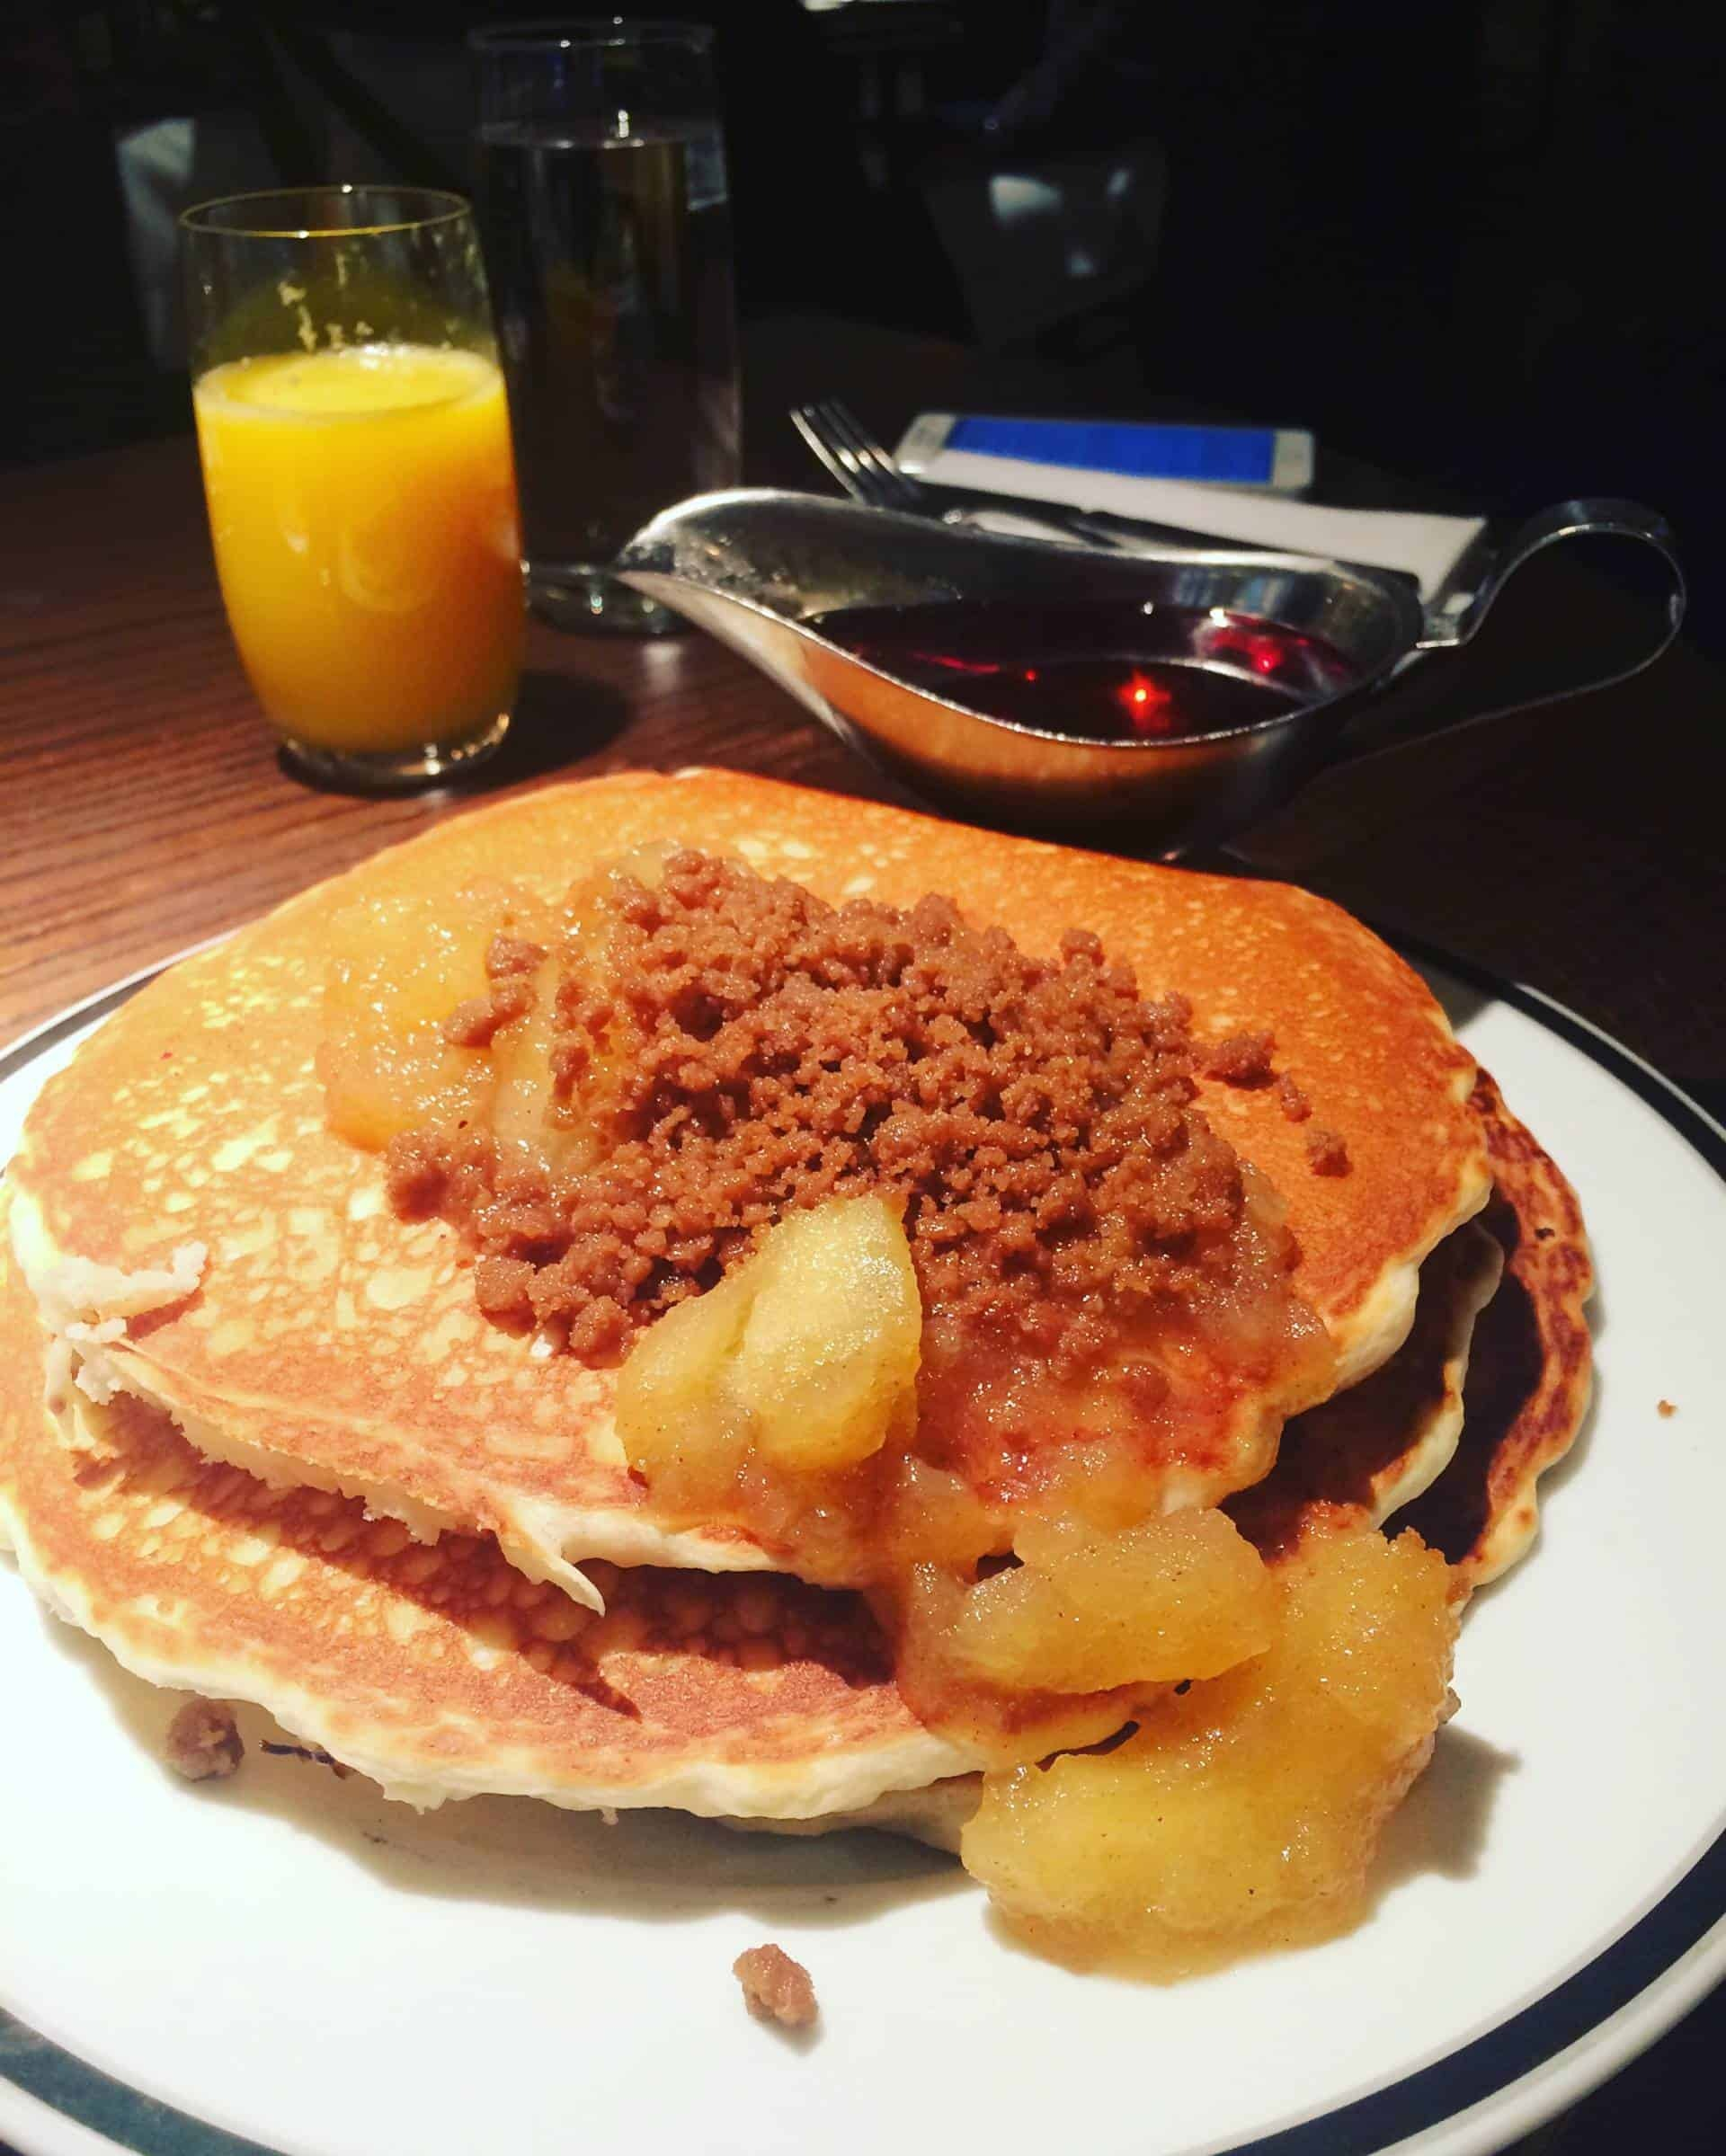 Pancakes with apple at The National